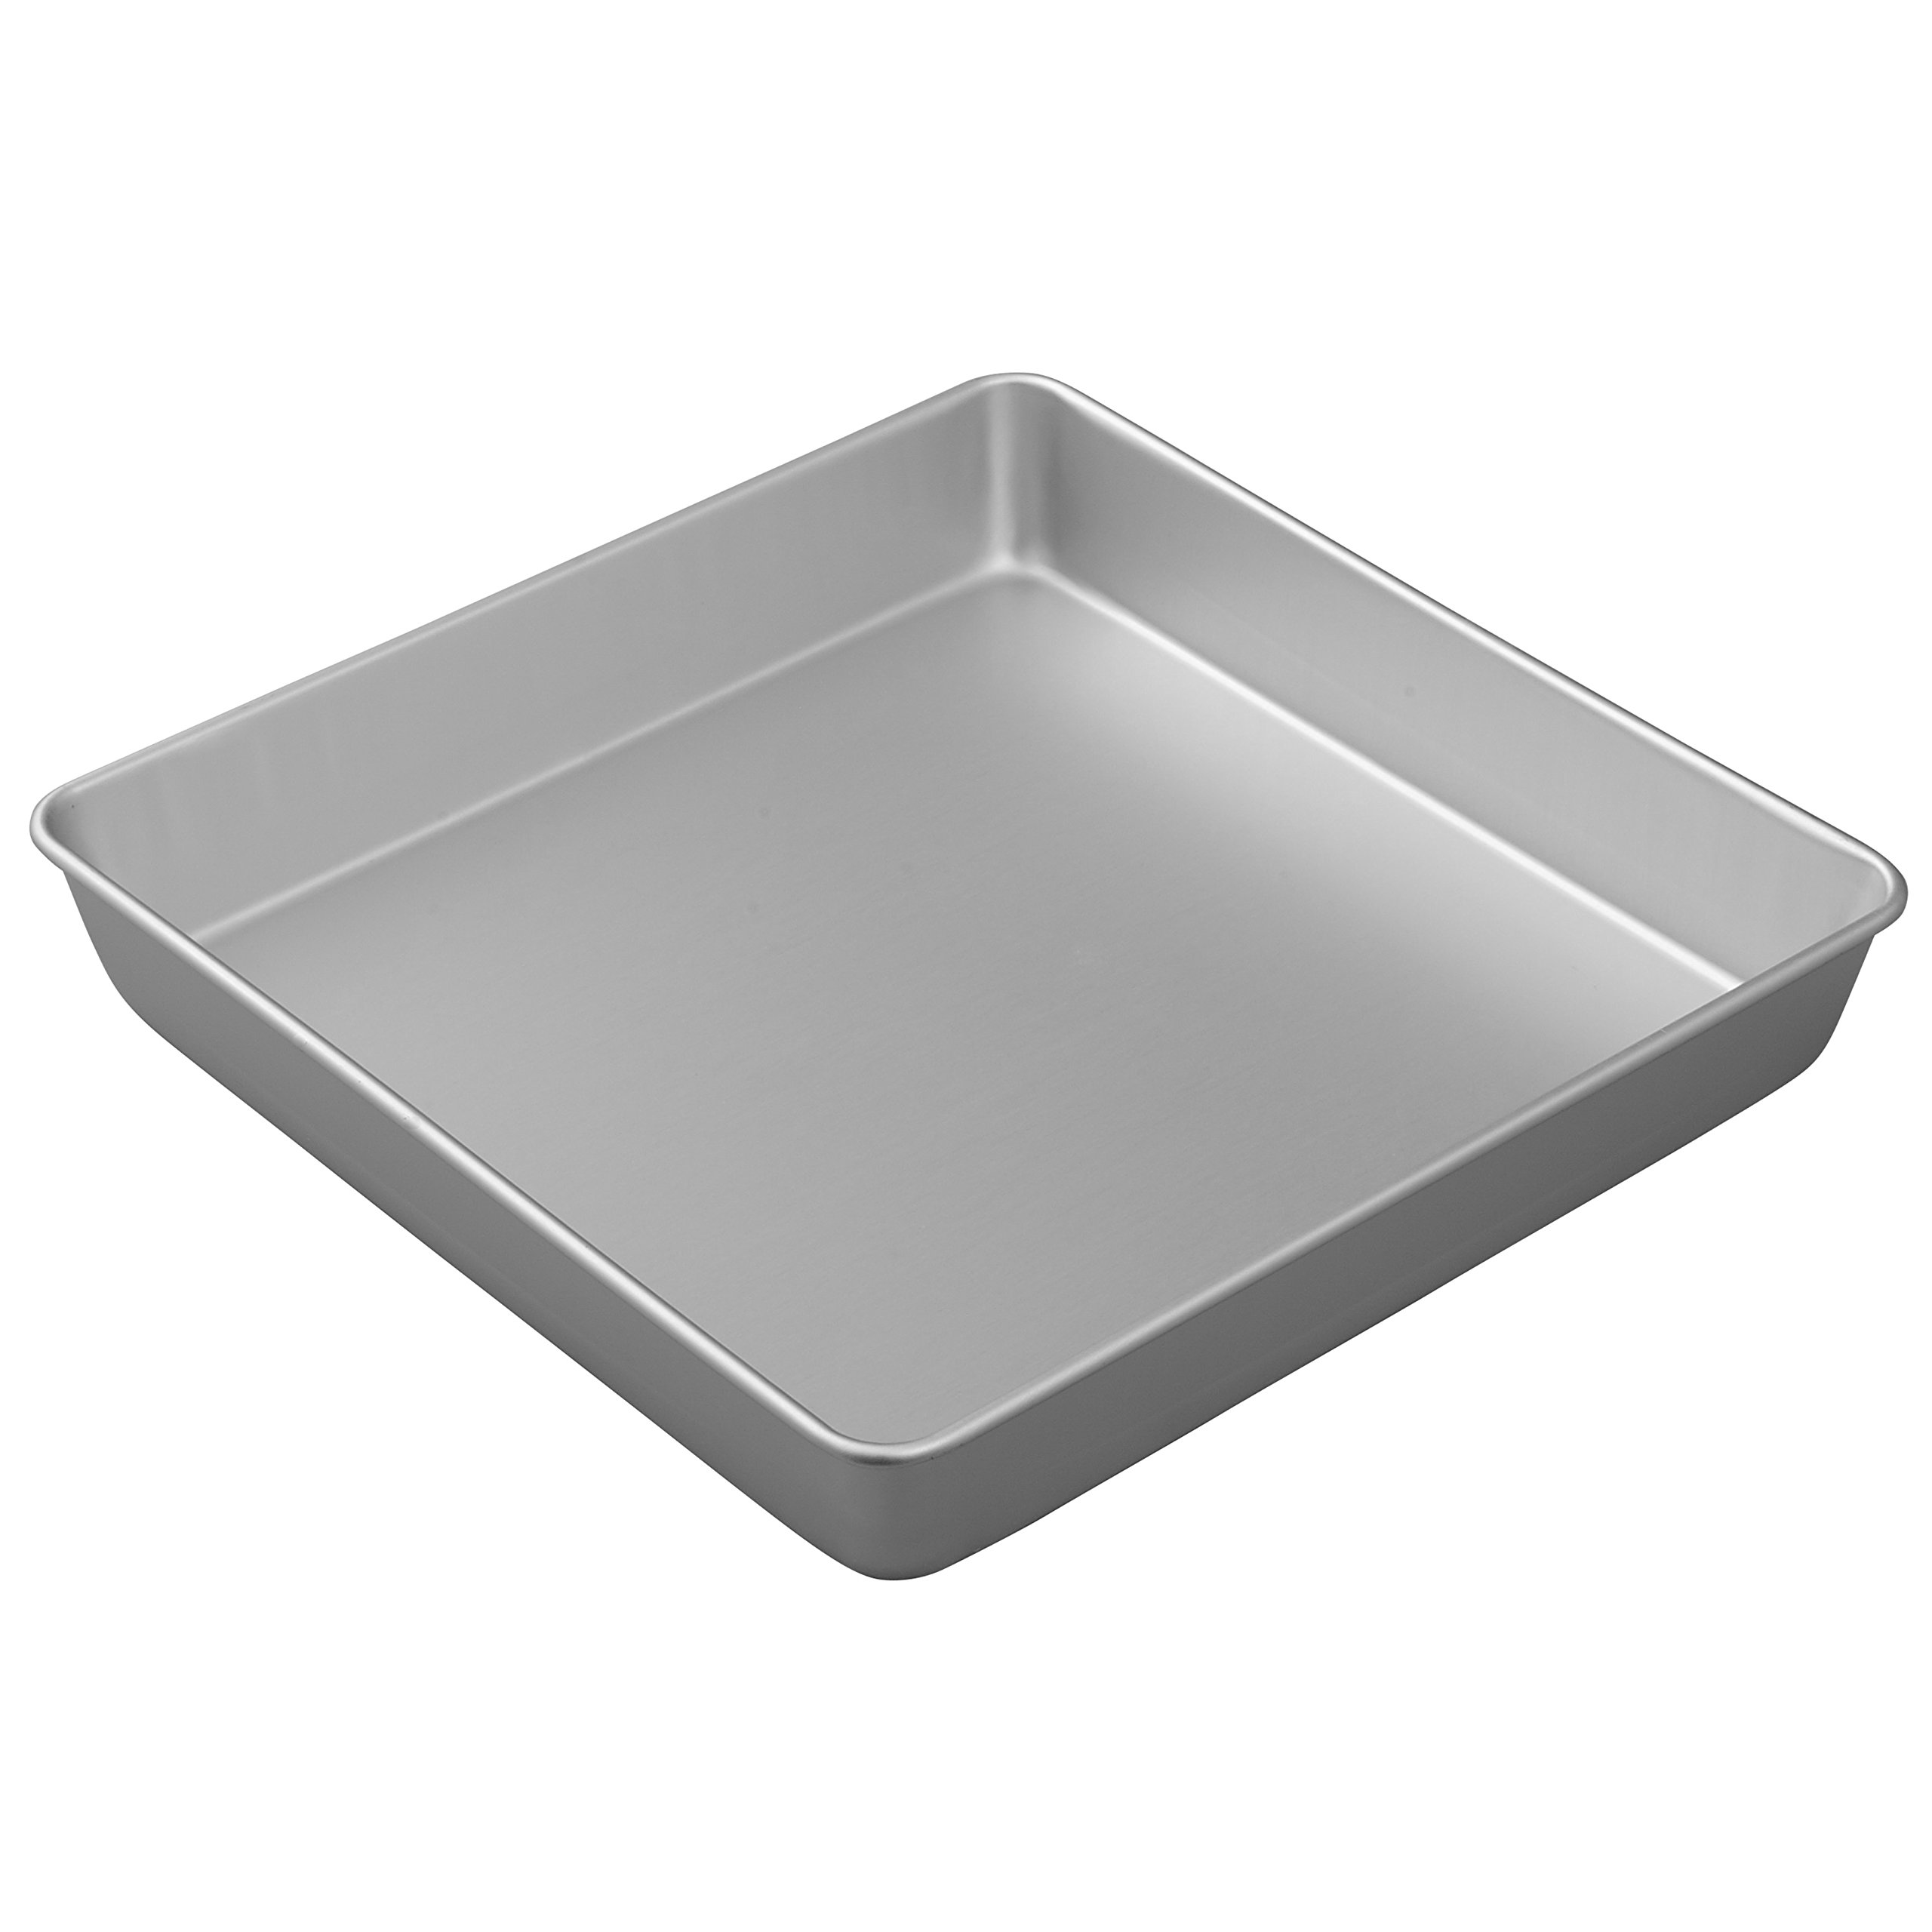 Wilton Performance Pans Aluminum Square Cake and Brownie Pan, 12-Inch by Wilton (Image #3)